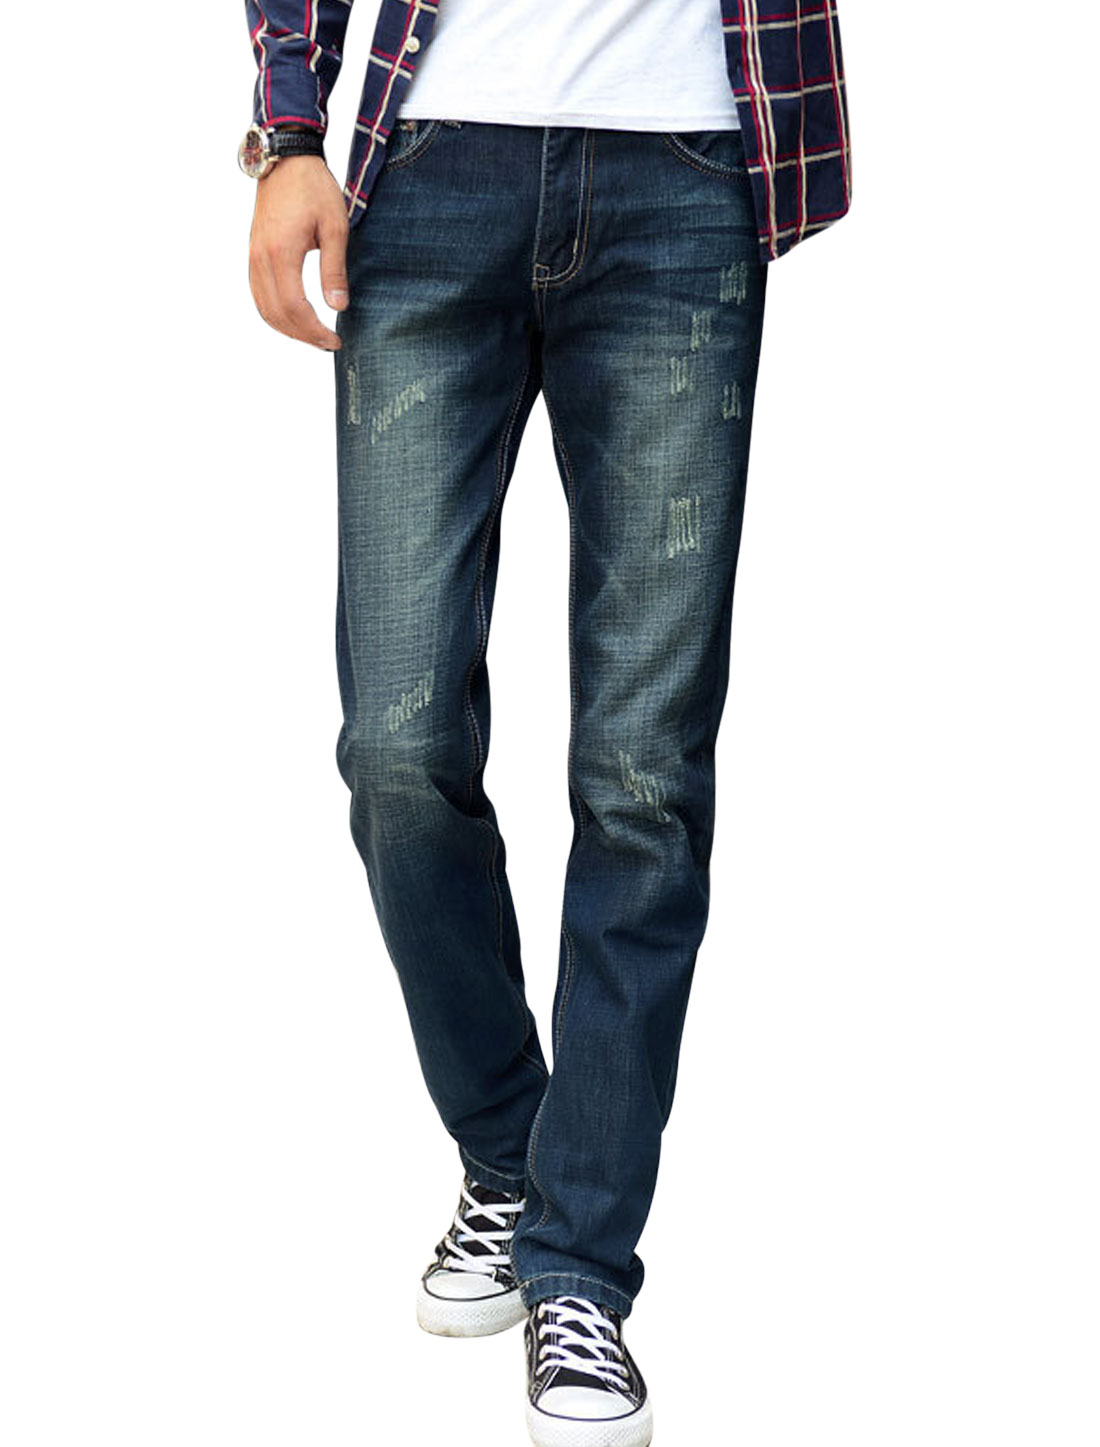 Men Mid Rise Distroyed Design Two Front Pockets Chic Jeans Navy Blue W30